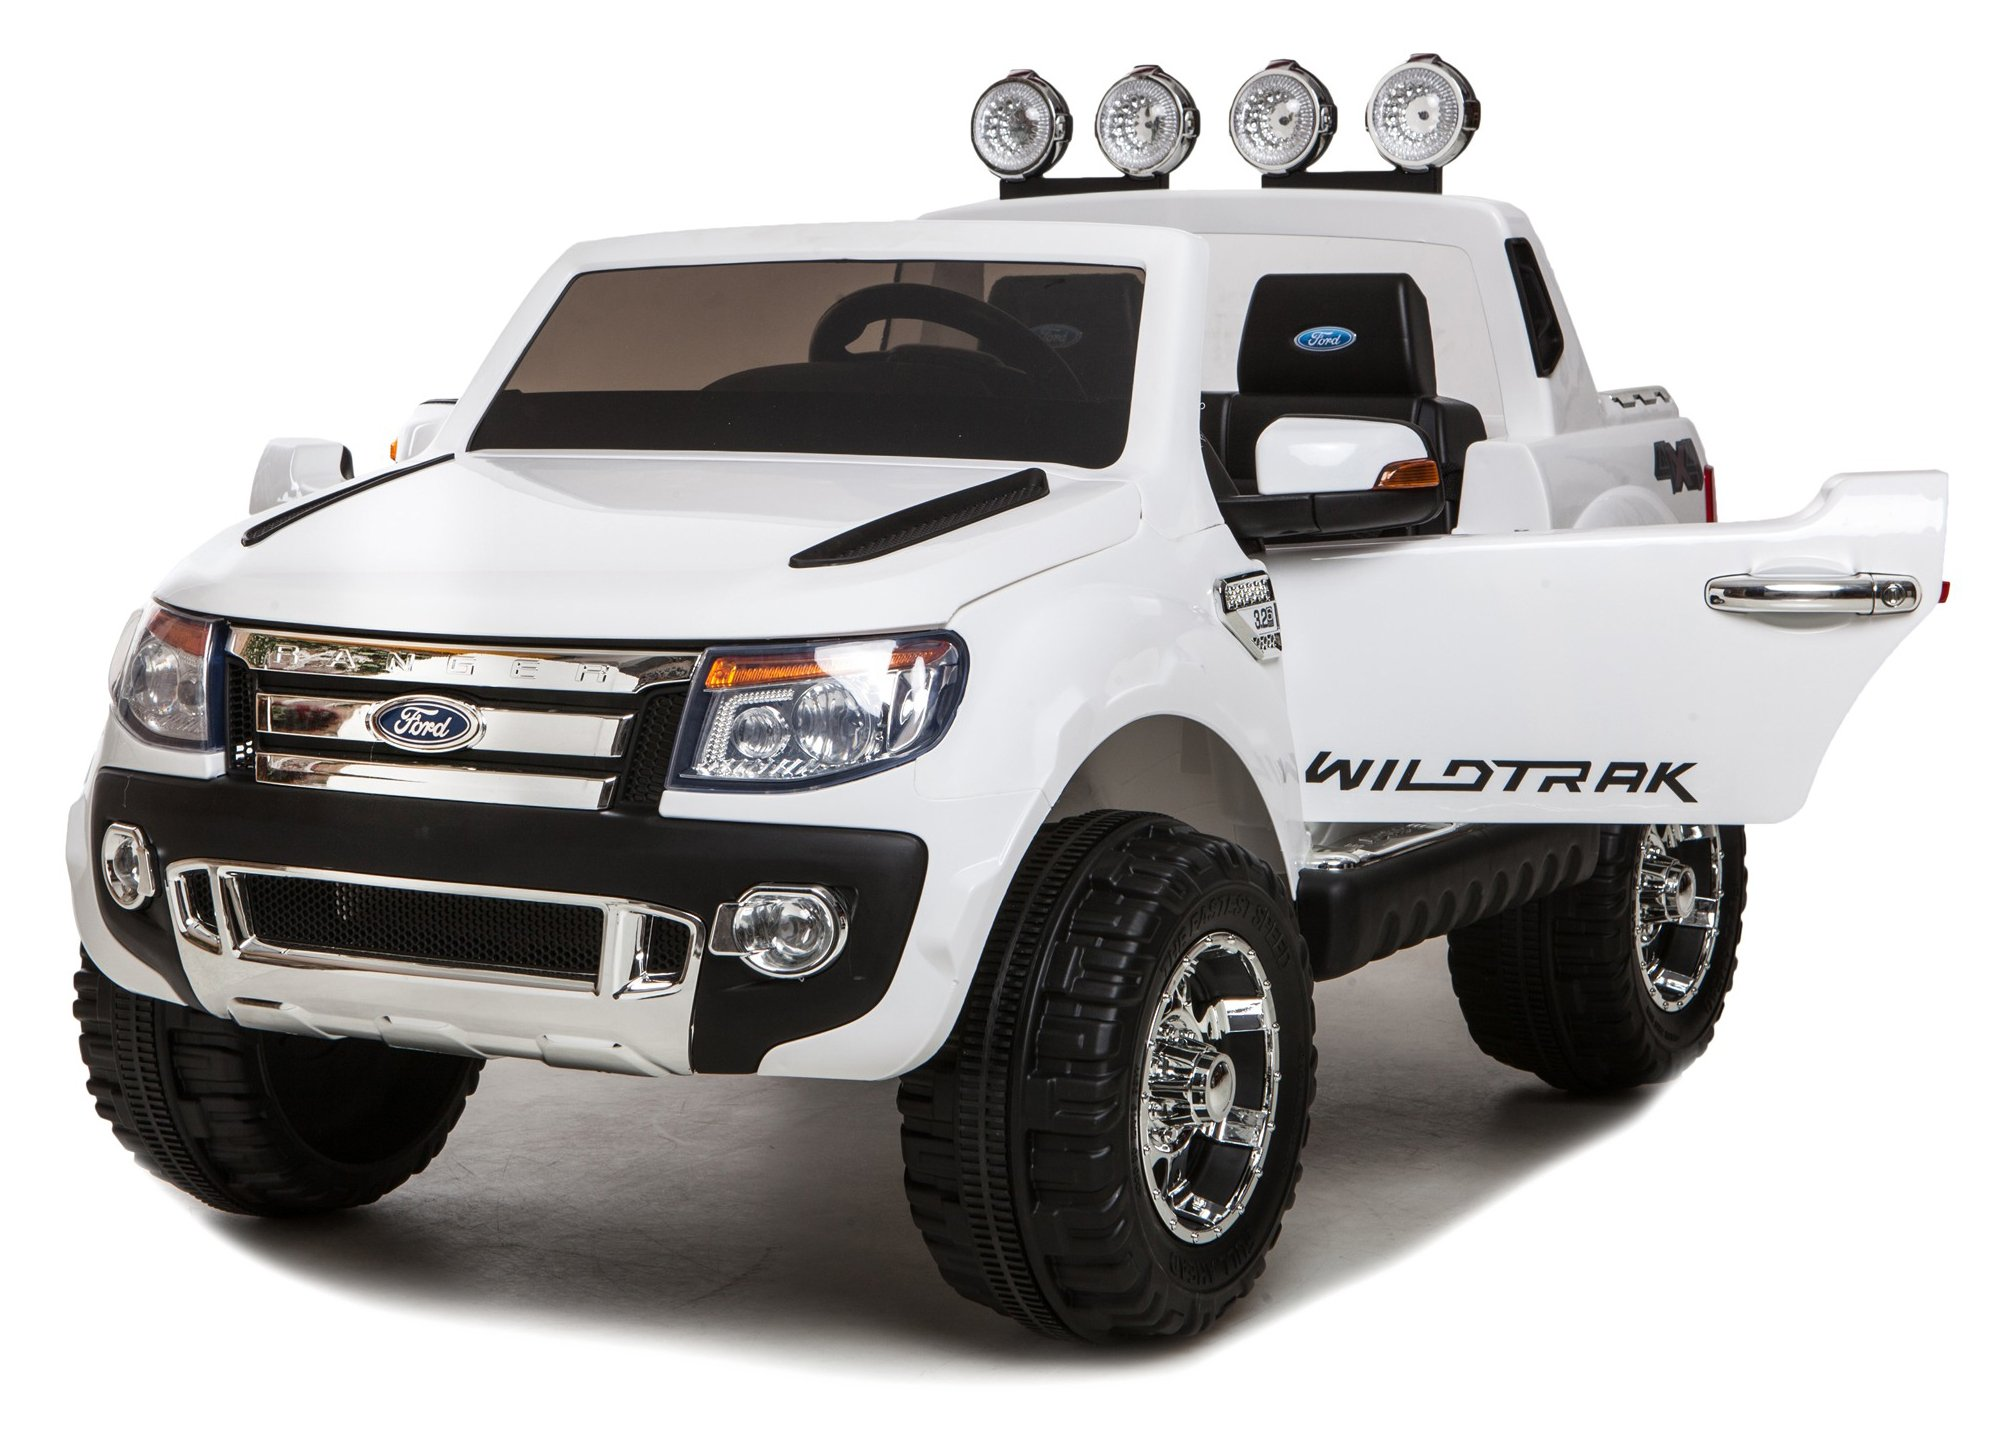 white ricco licensed ford ranger 4x4 kids electric ride on car with remote control led lights